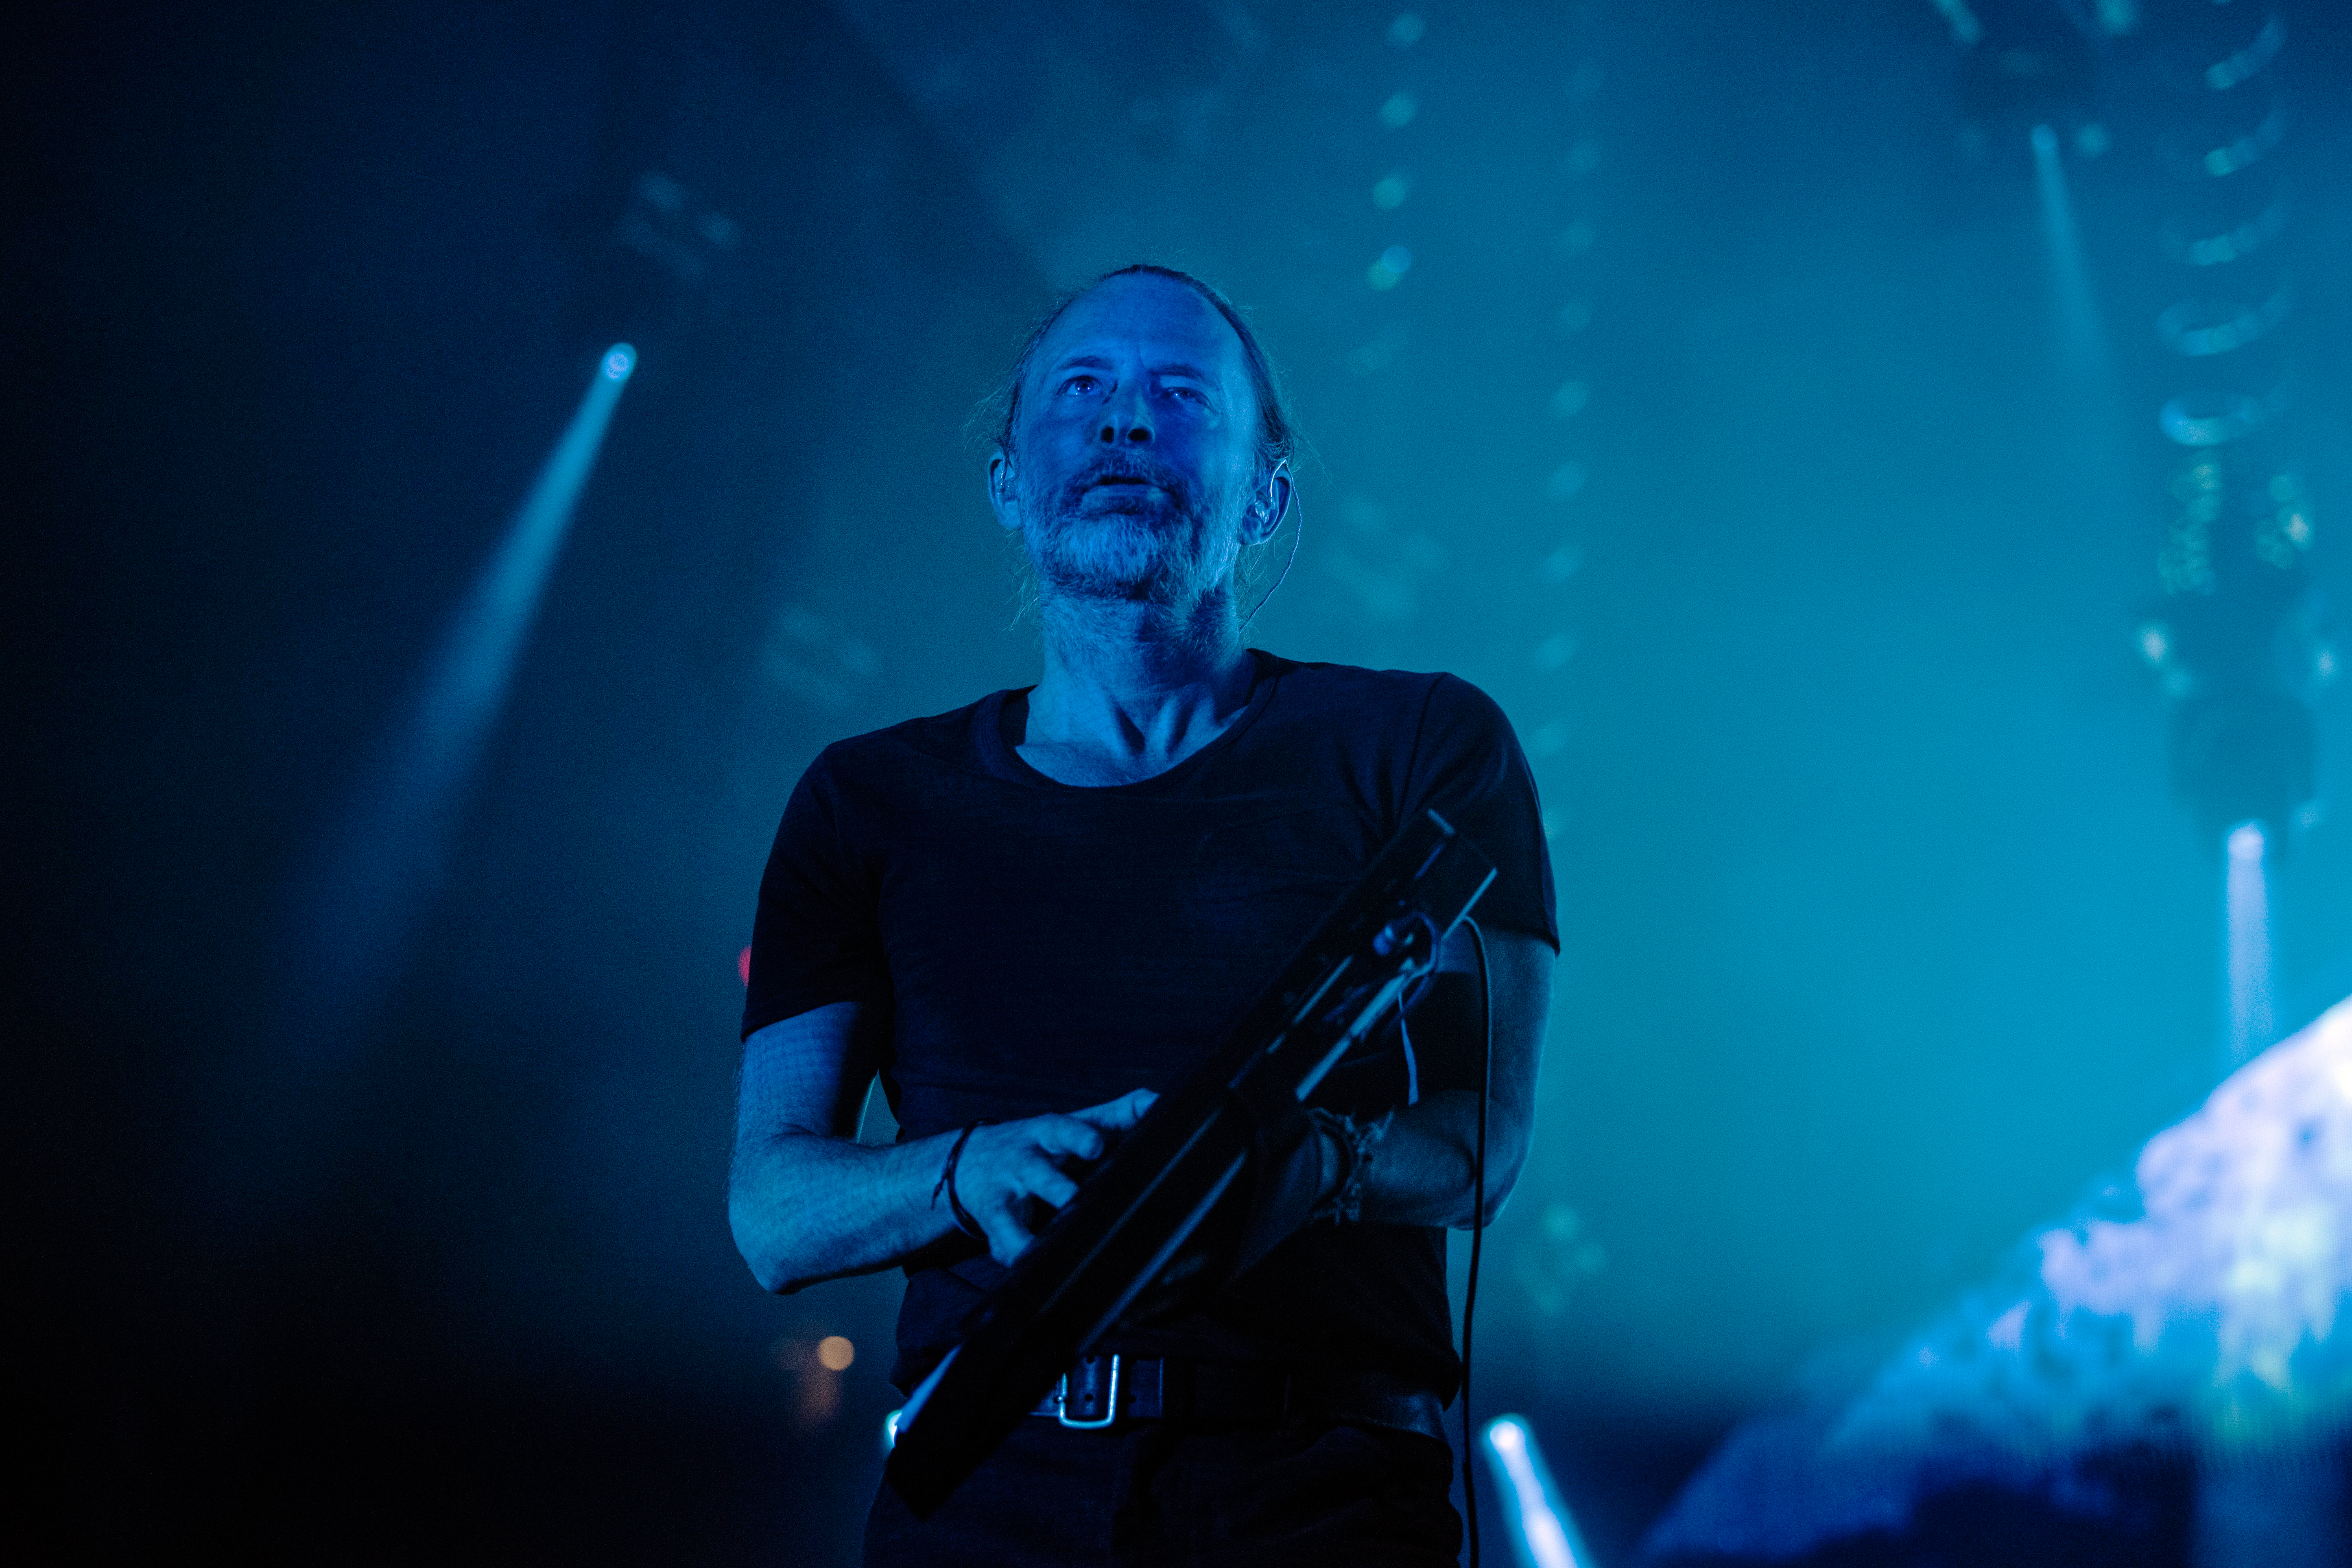 rollingstone.com - Rob Sheffield - Radiohead's Summer 2018 U.S. Tour Is a Career-Capping Triumph